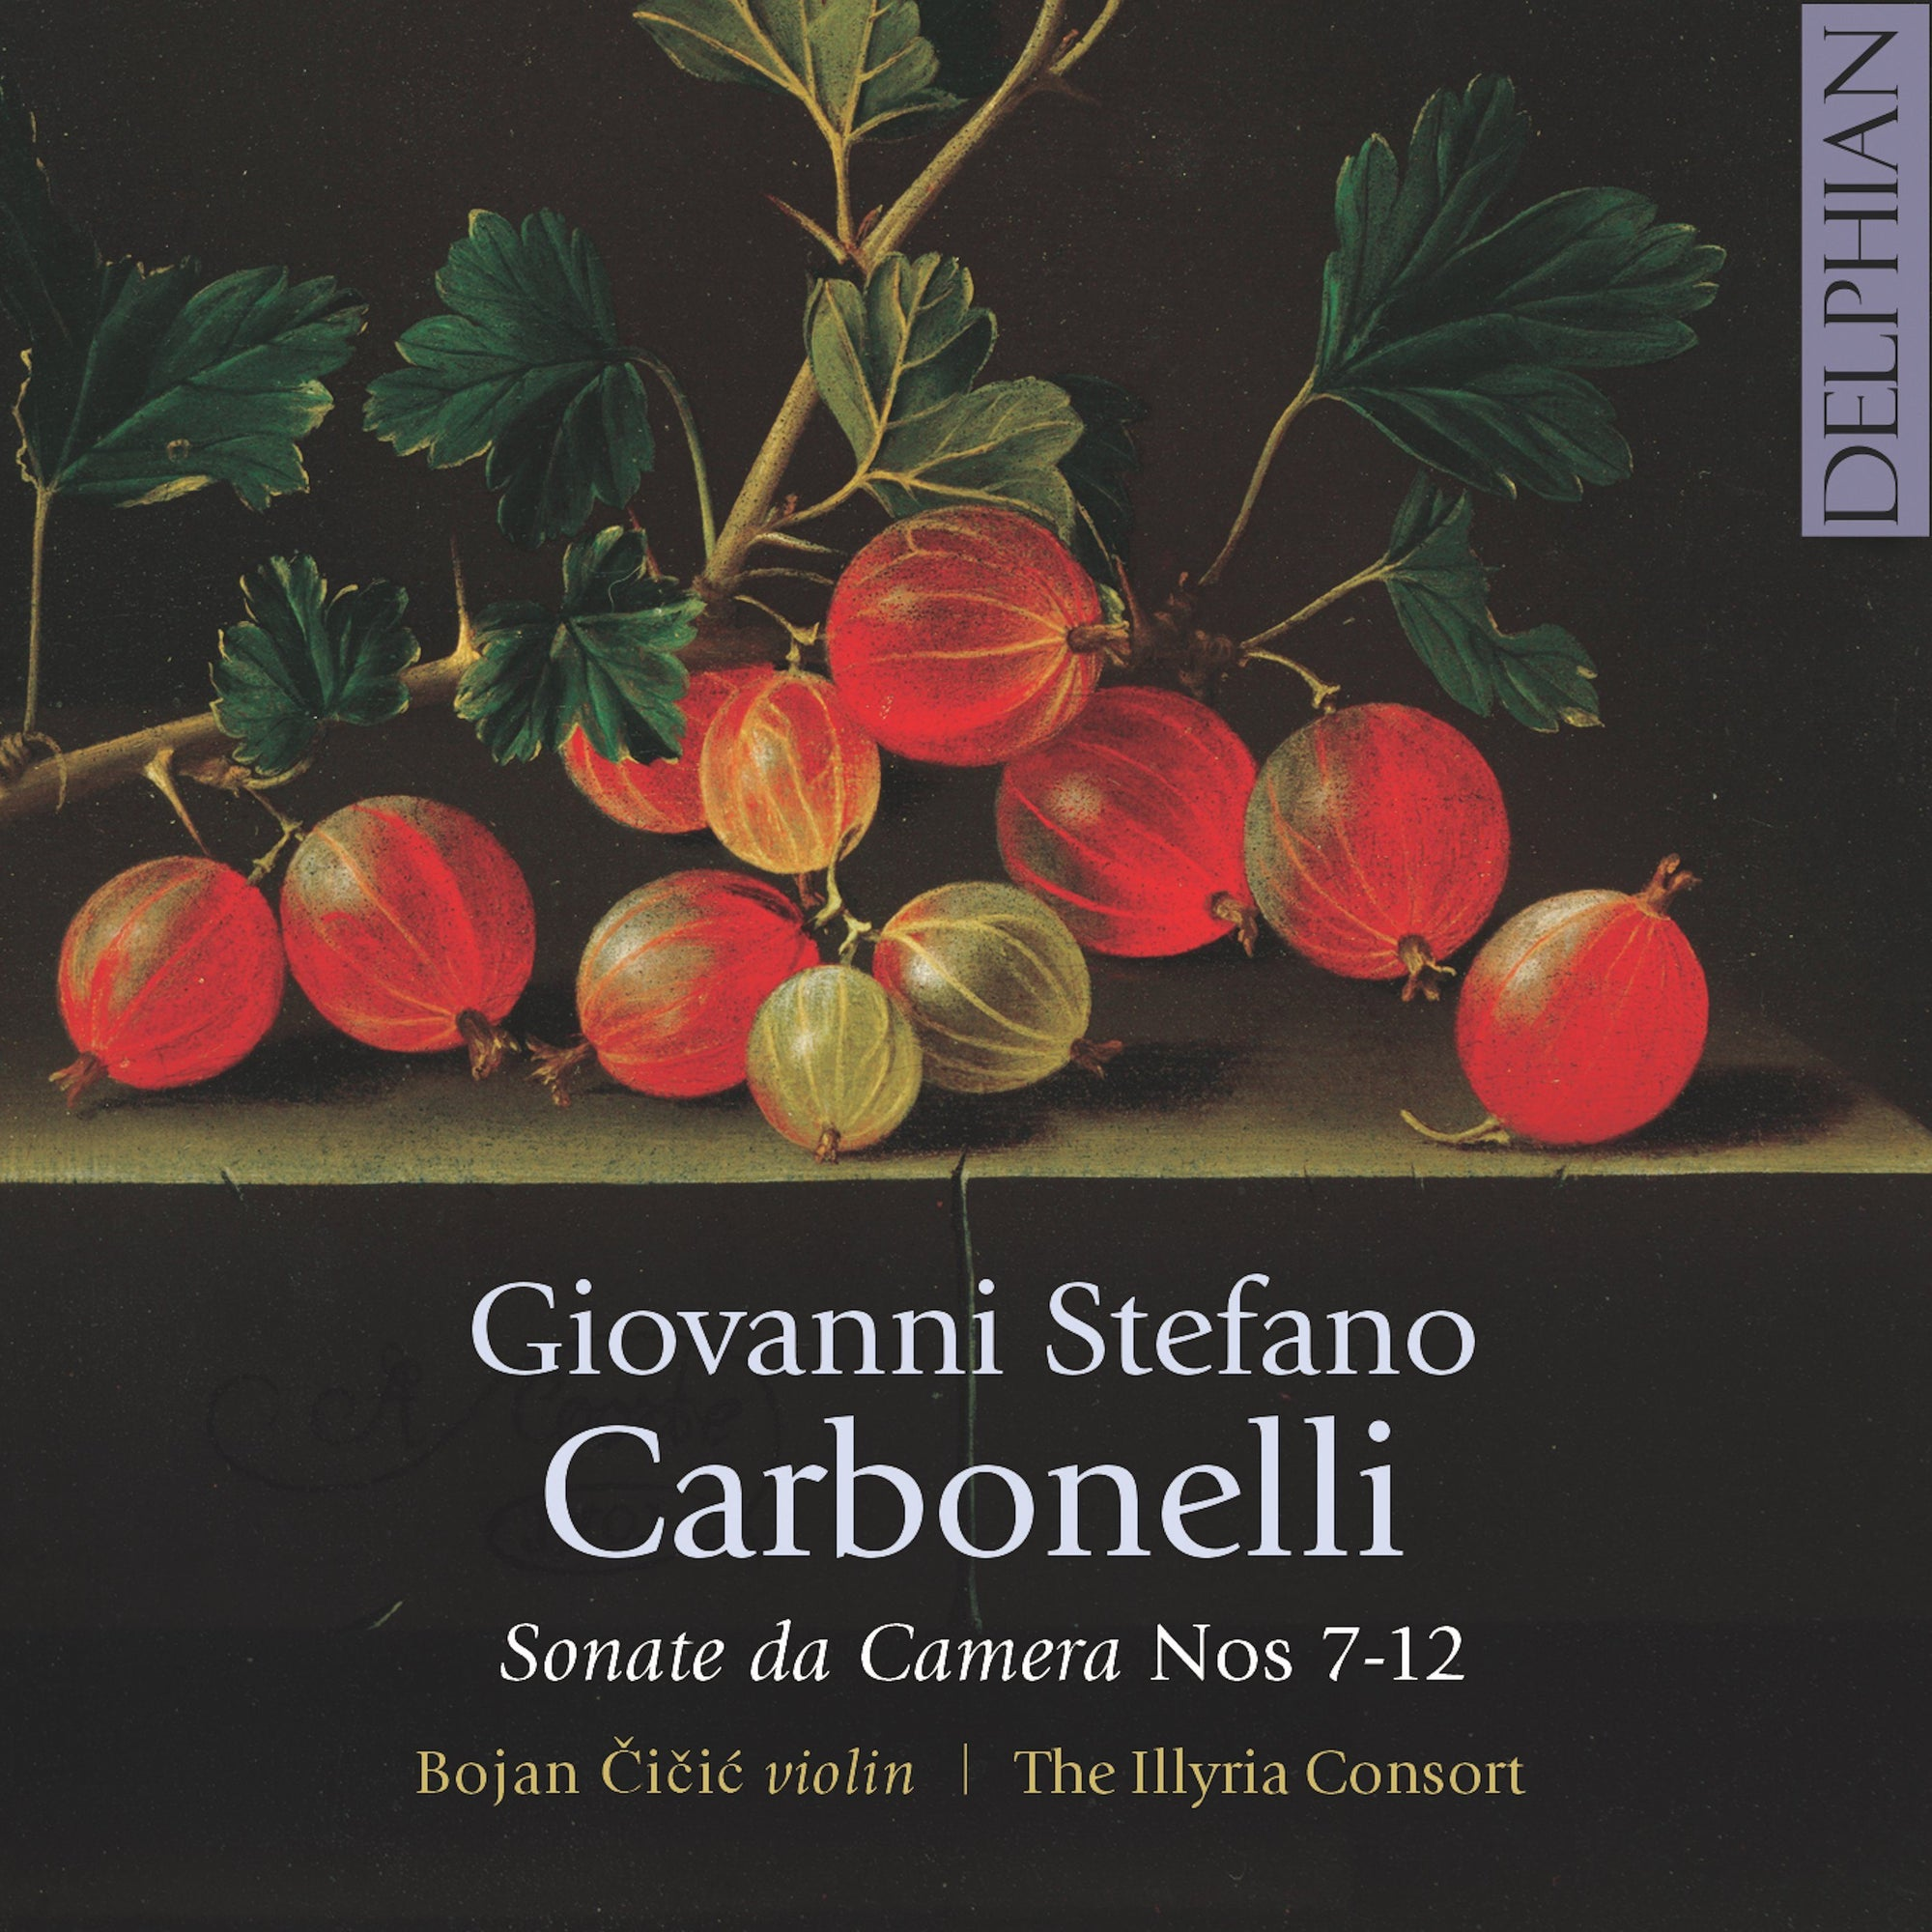 Carbonelli: Sonate da Camera Vol.2 CD Delphian Records